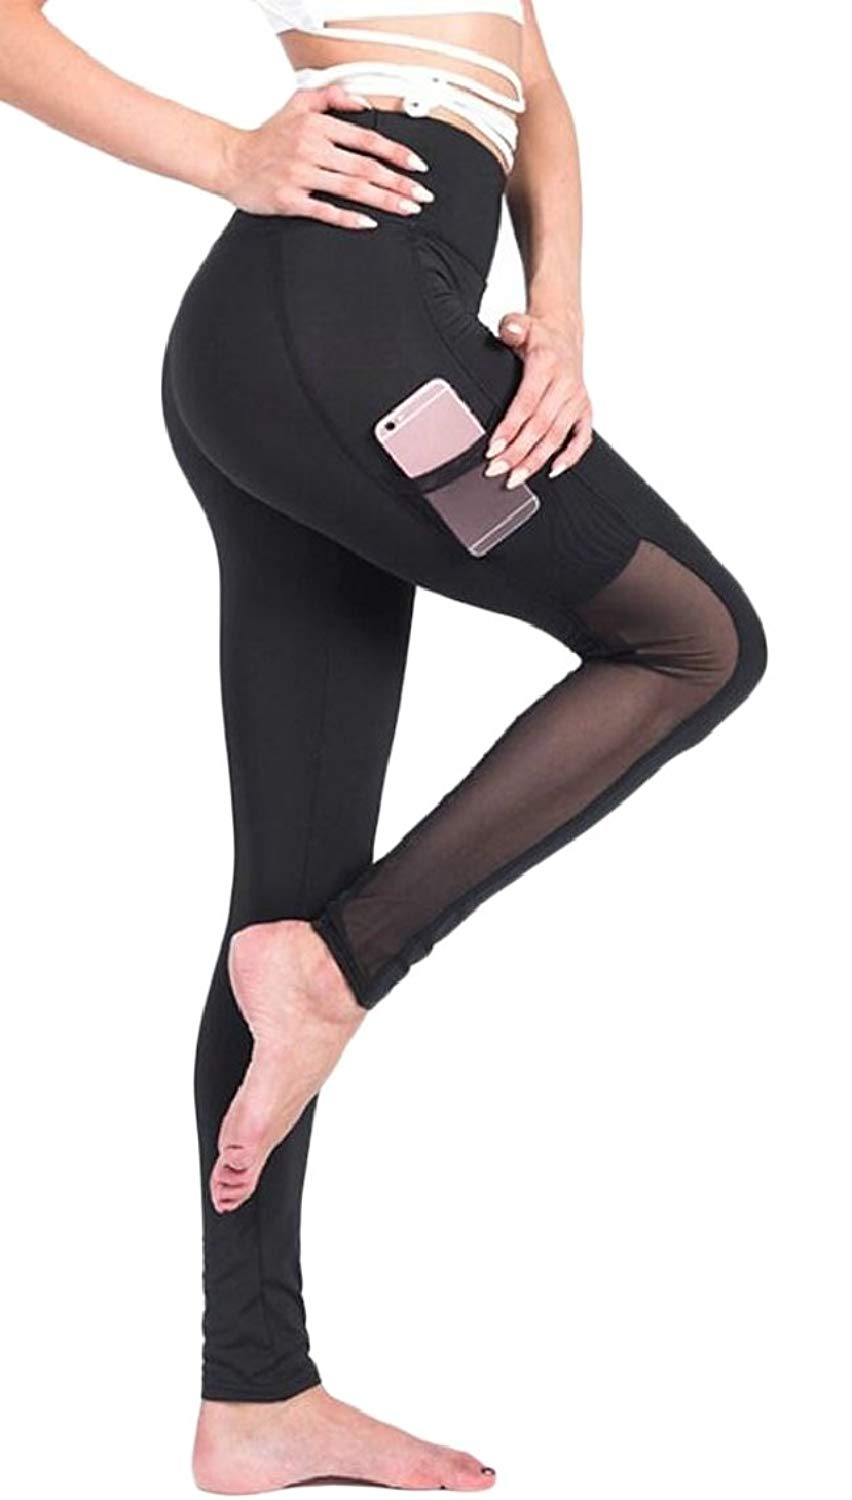 ouxiuli Women's Yoga Pants Fashion Workout Running Leggings High Waist Yoga Pants with Pocket